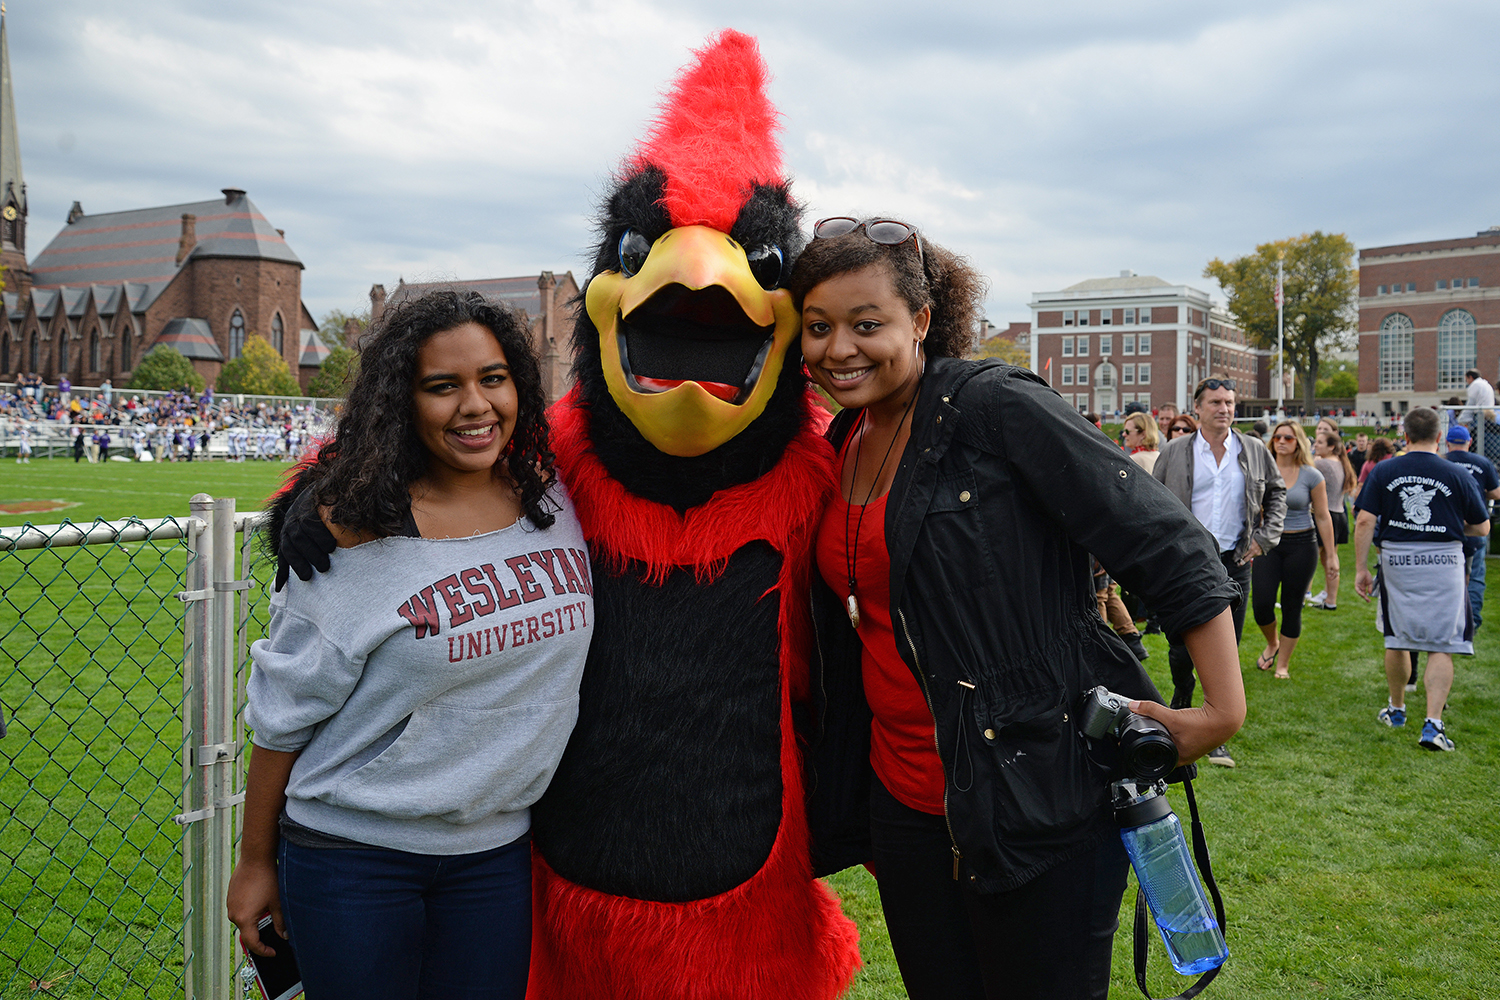 Wesleyan's Homecoming Celebration included six athletic contests.